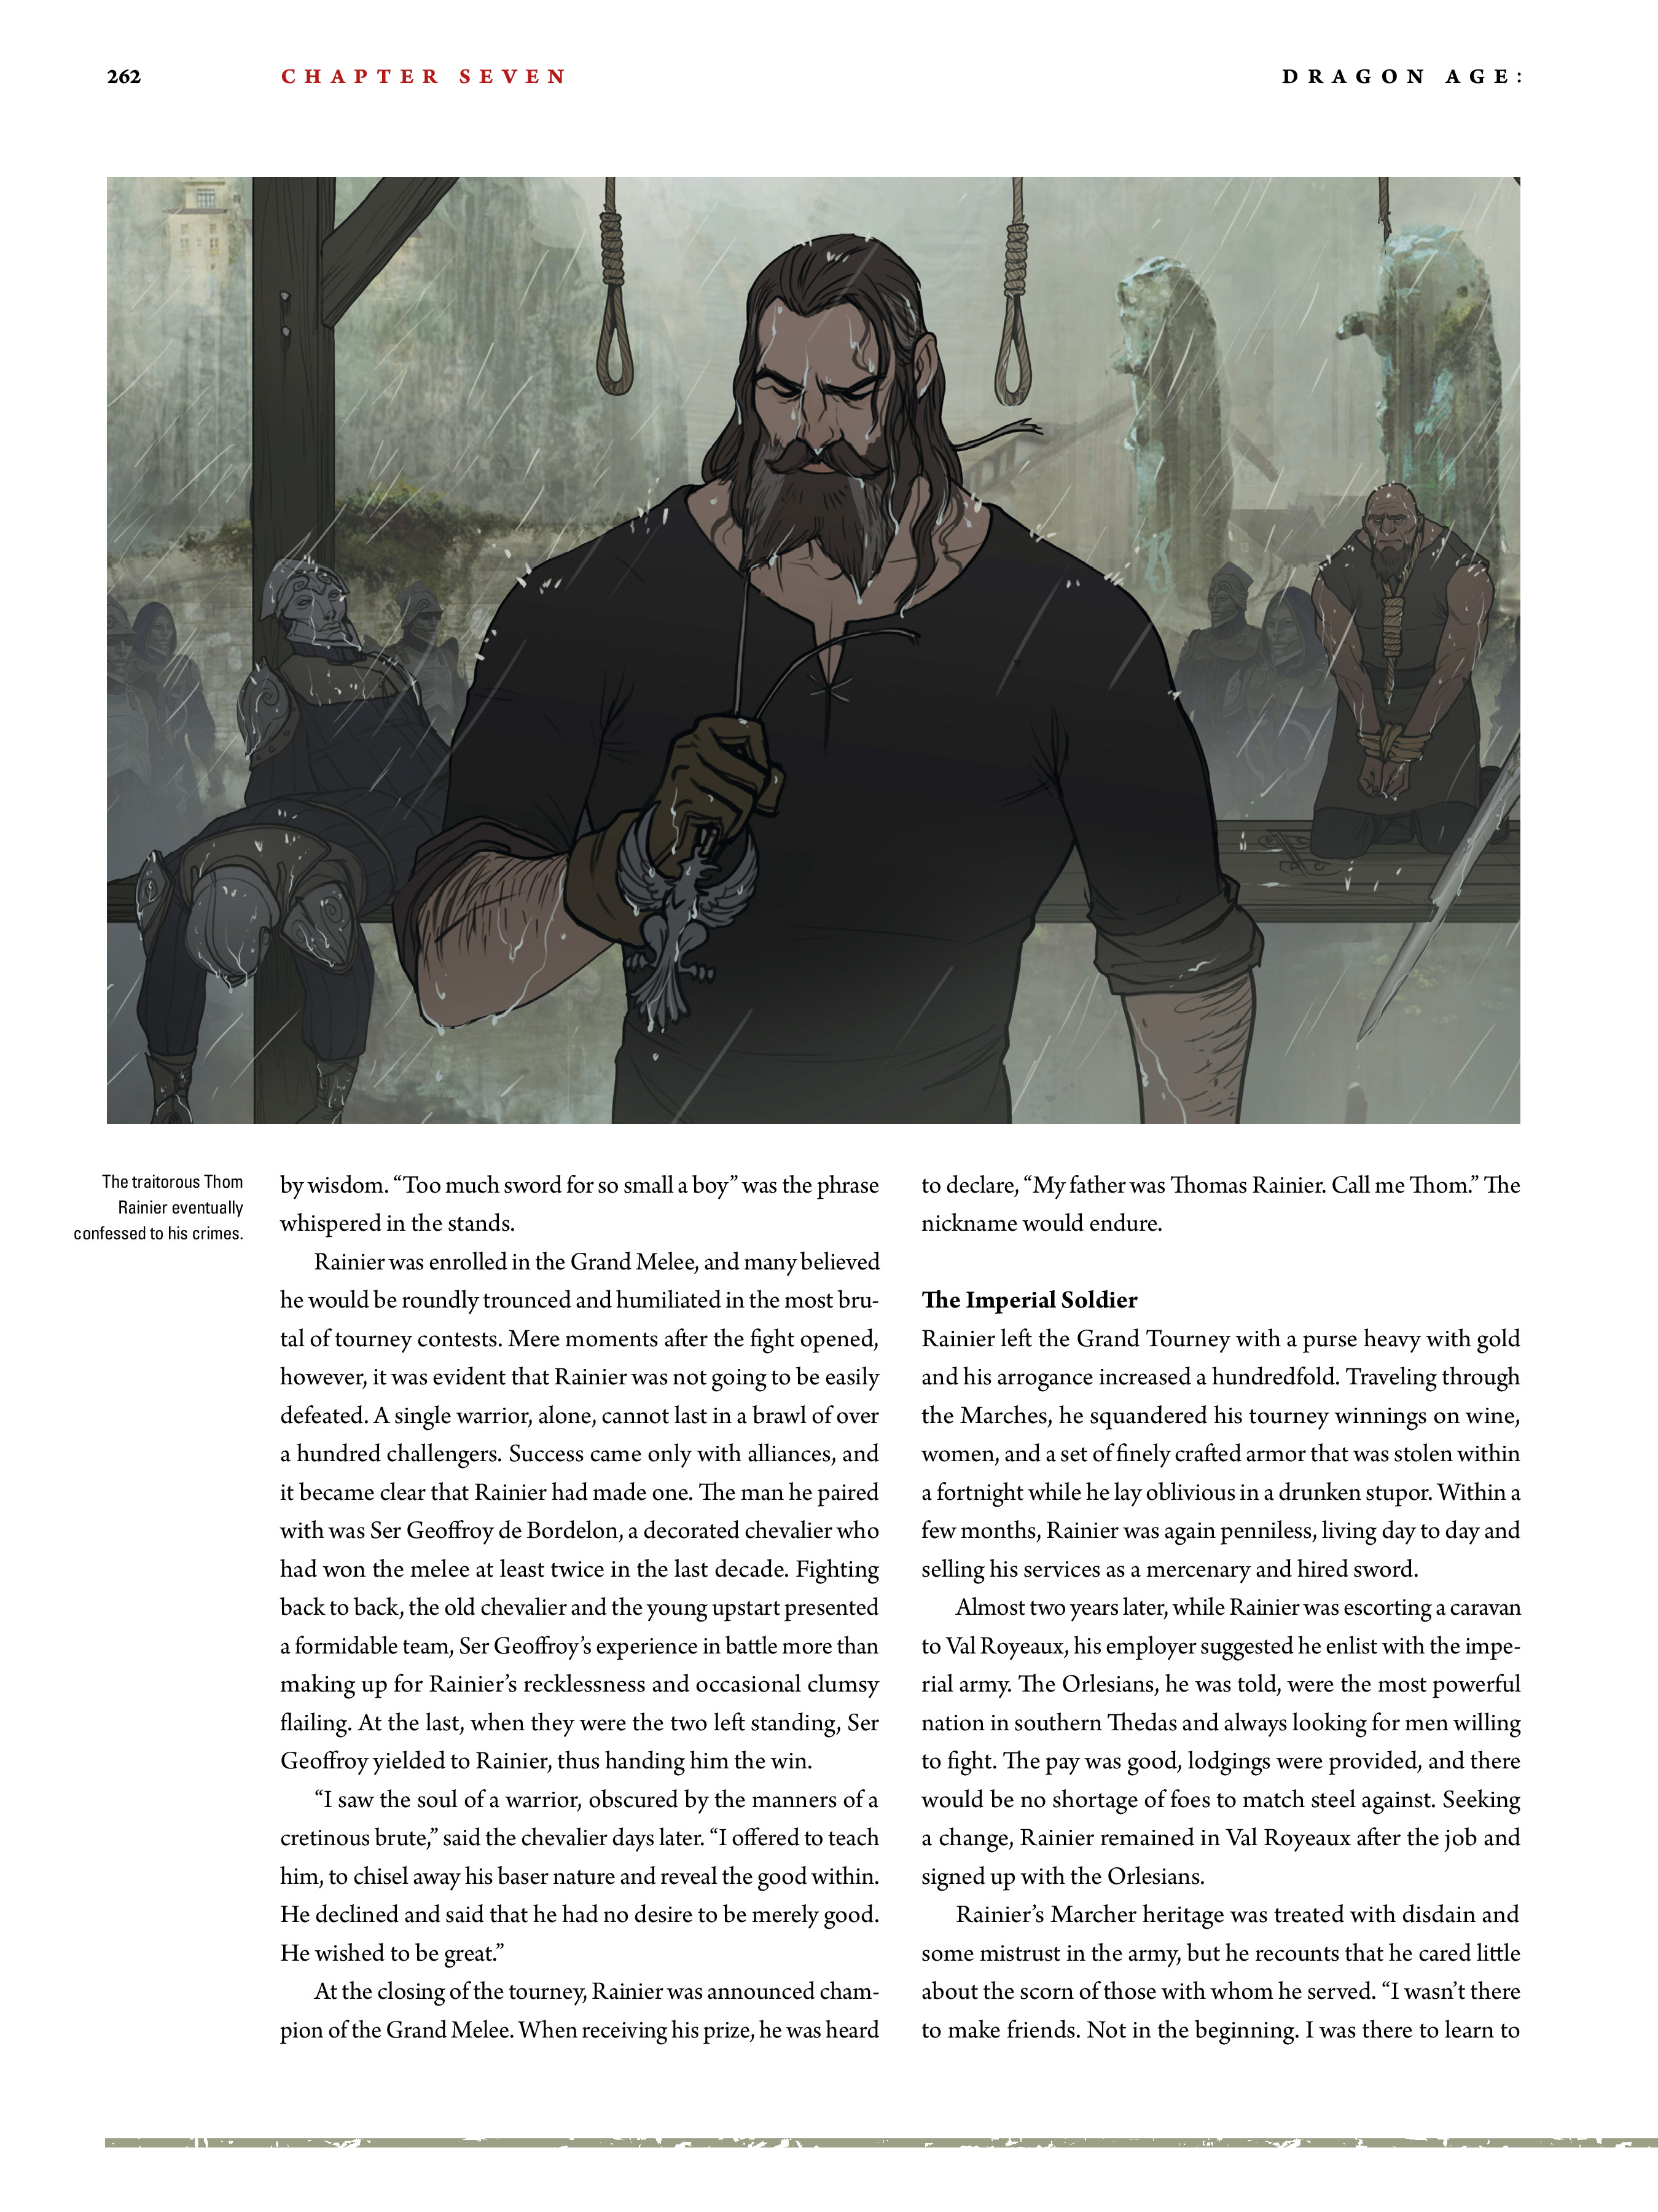 Read online Dragon Age: The World of Thedas comic -  Issue # TPB 2 - 255